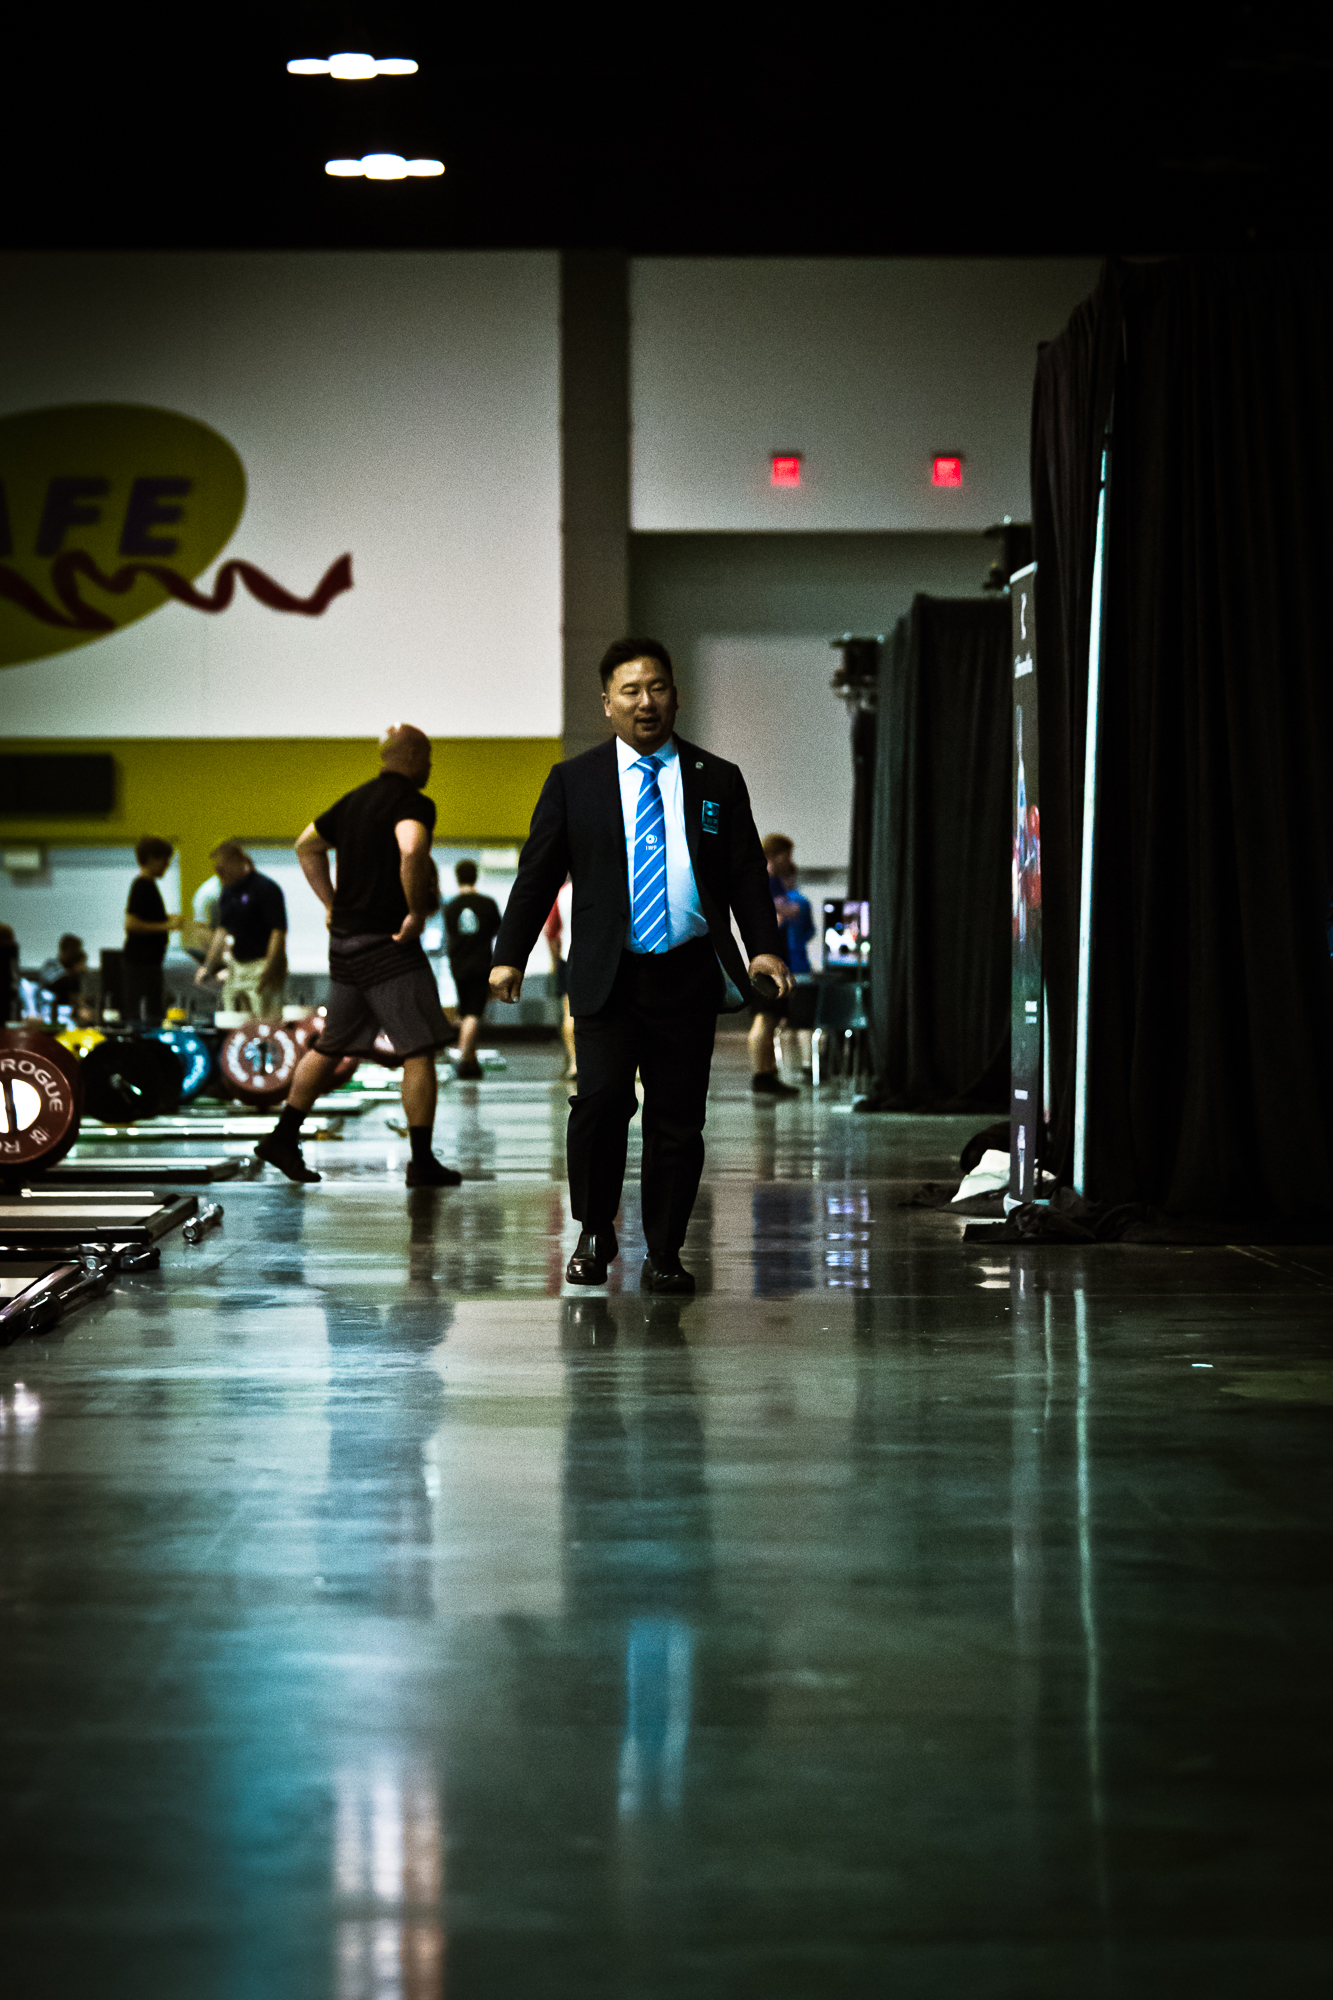 usaw-staff-youth-nationals-3.jpg